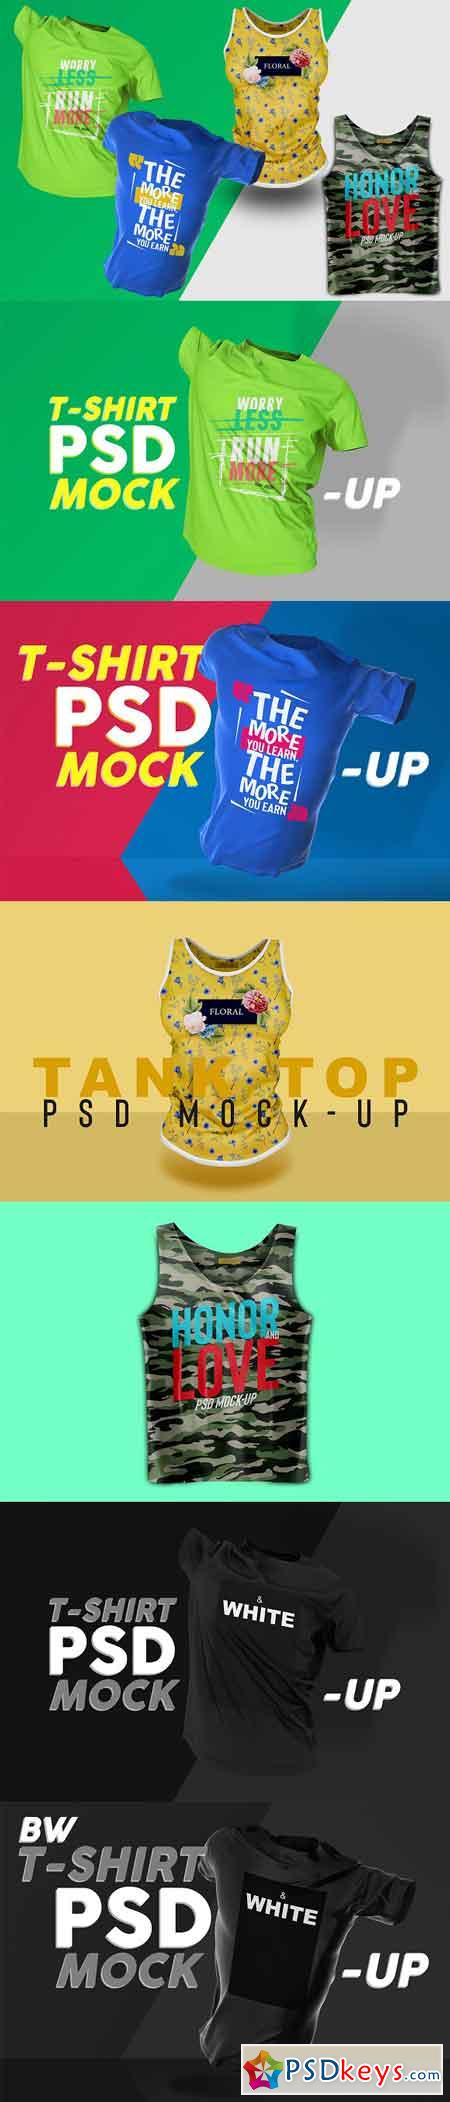 T-Shirt and Tank Top PSD Mockup Set 3247511